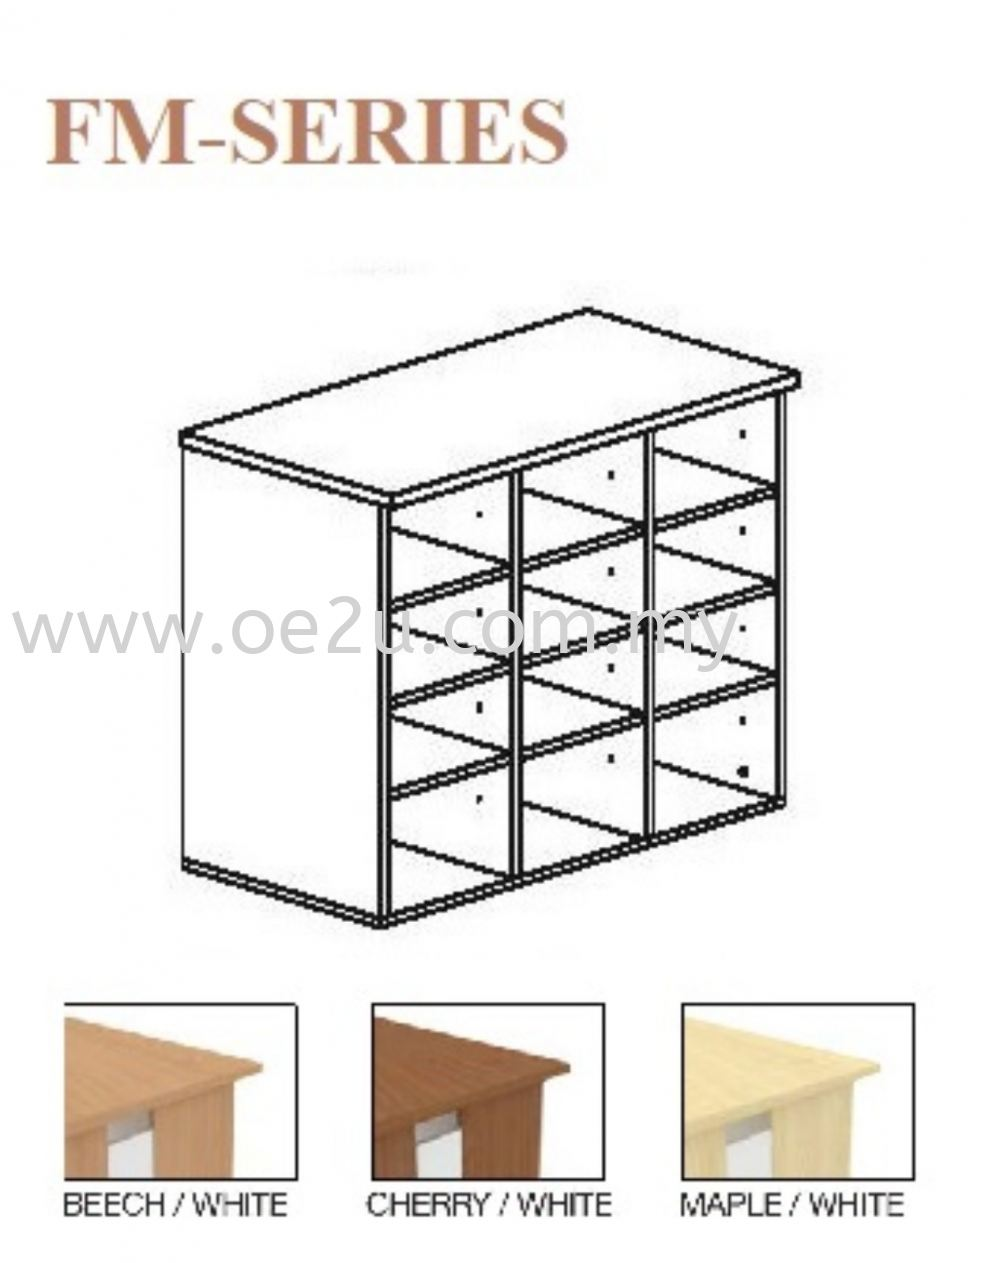 Low Pigeon Hole Cabinet - 2 Tiers (FM Series)